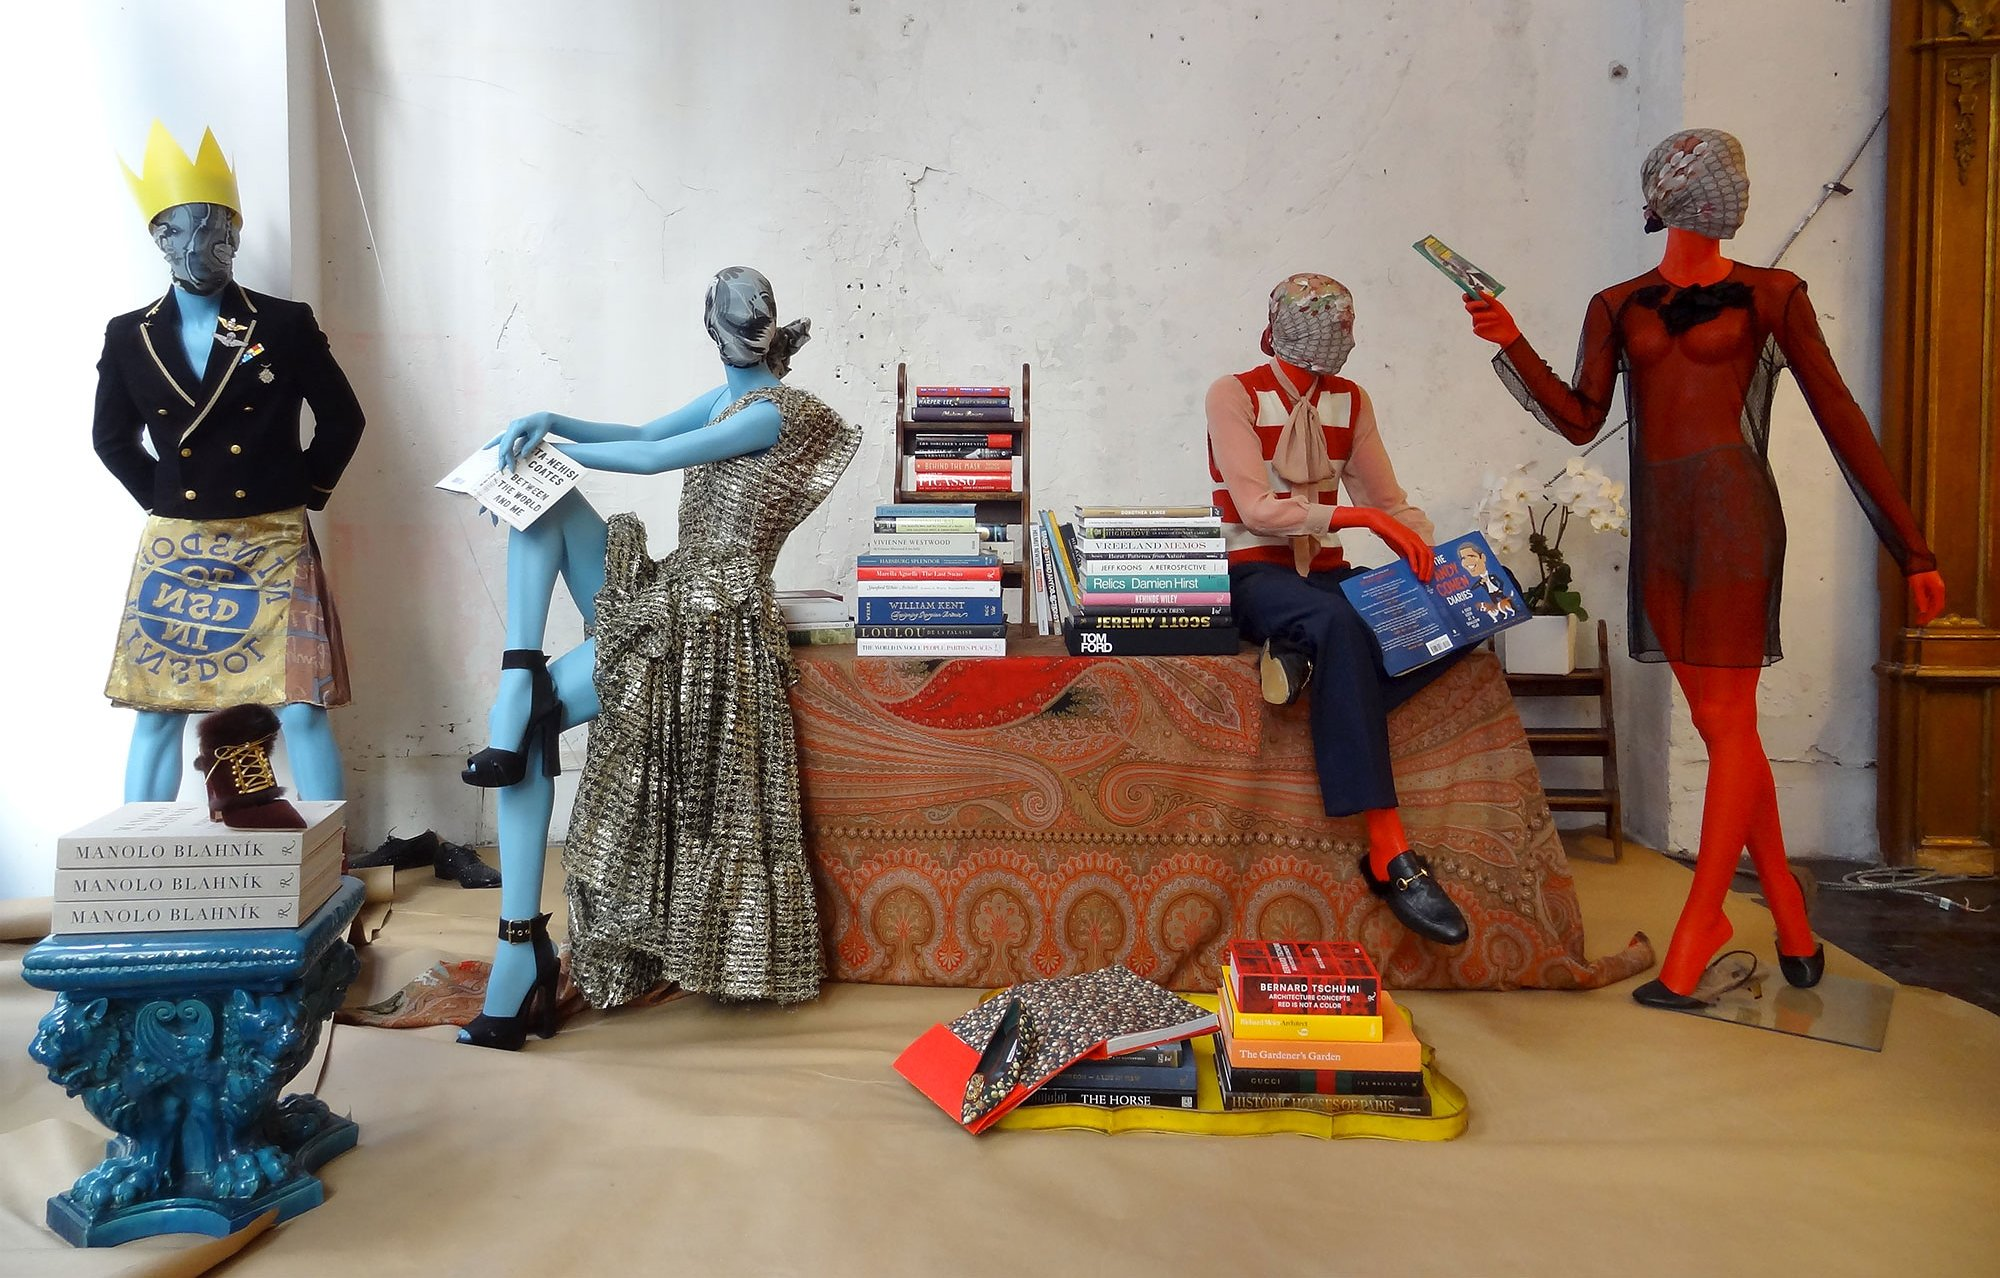 Andre Leon Talley's window display.Photos Courtesy of Vogue